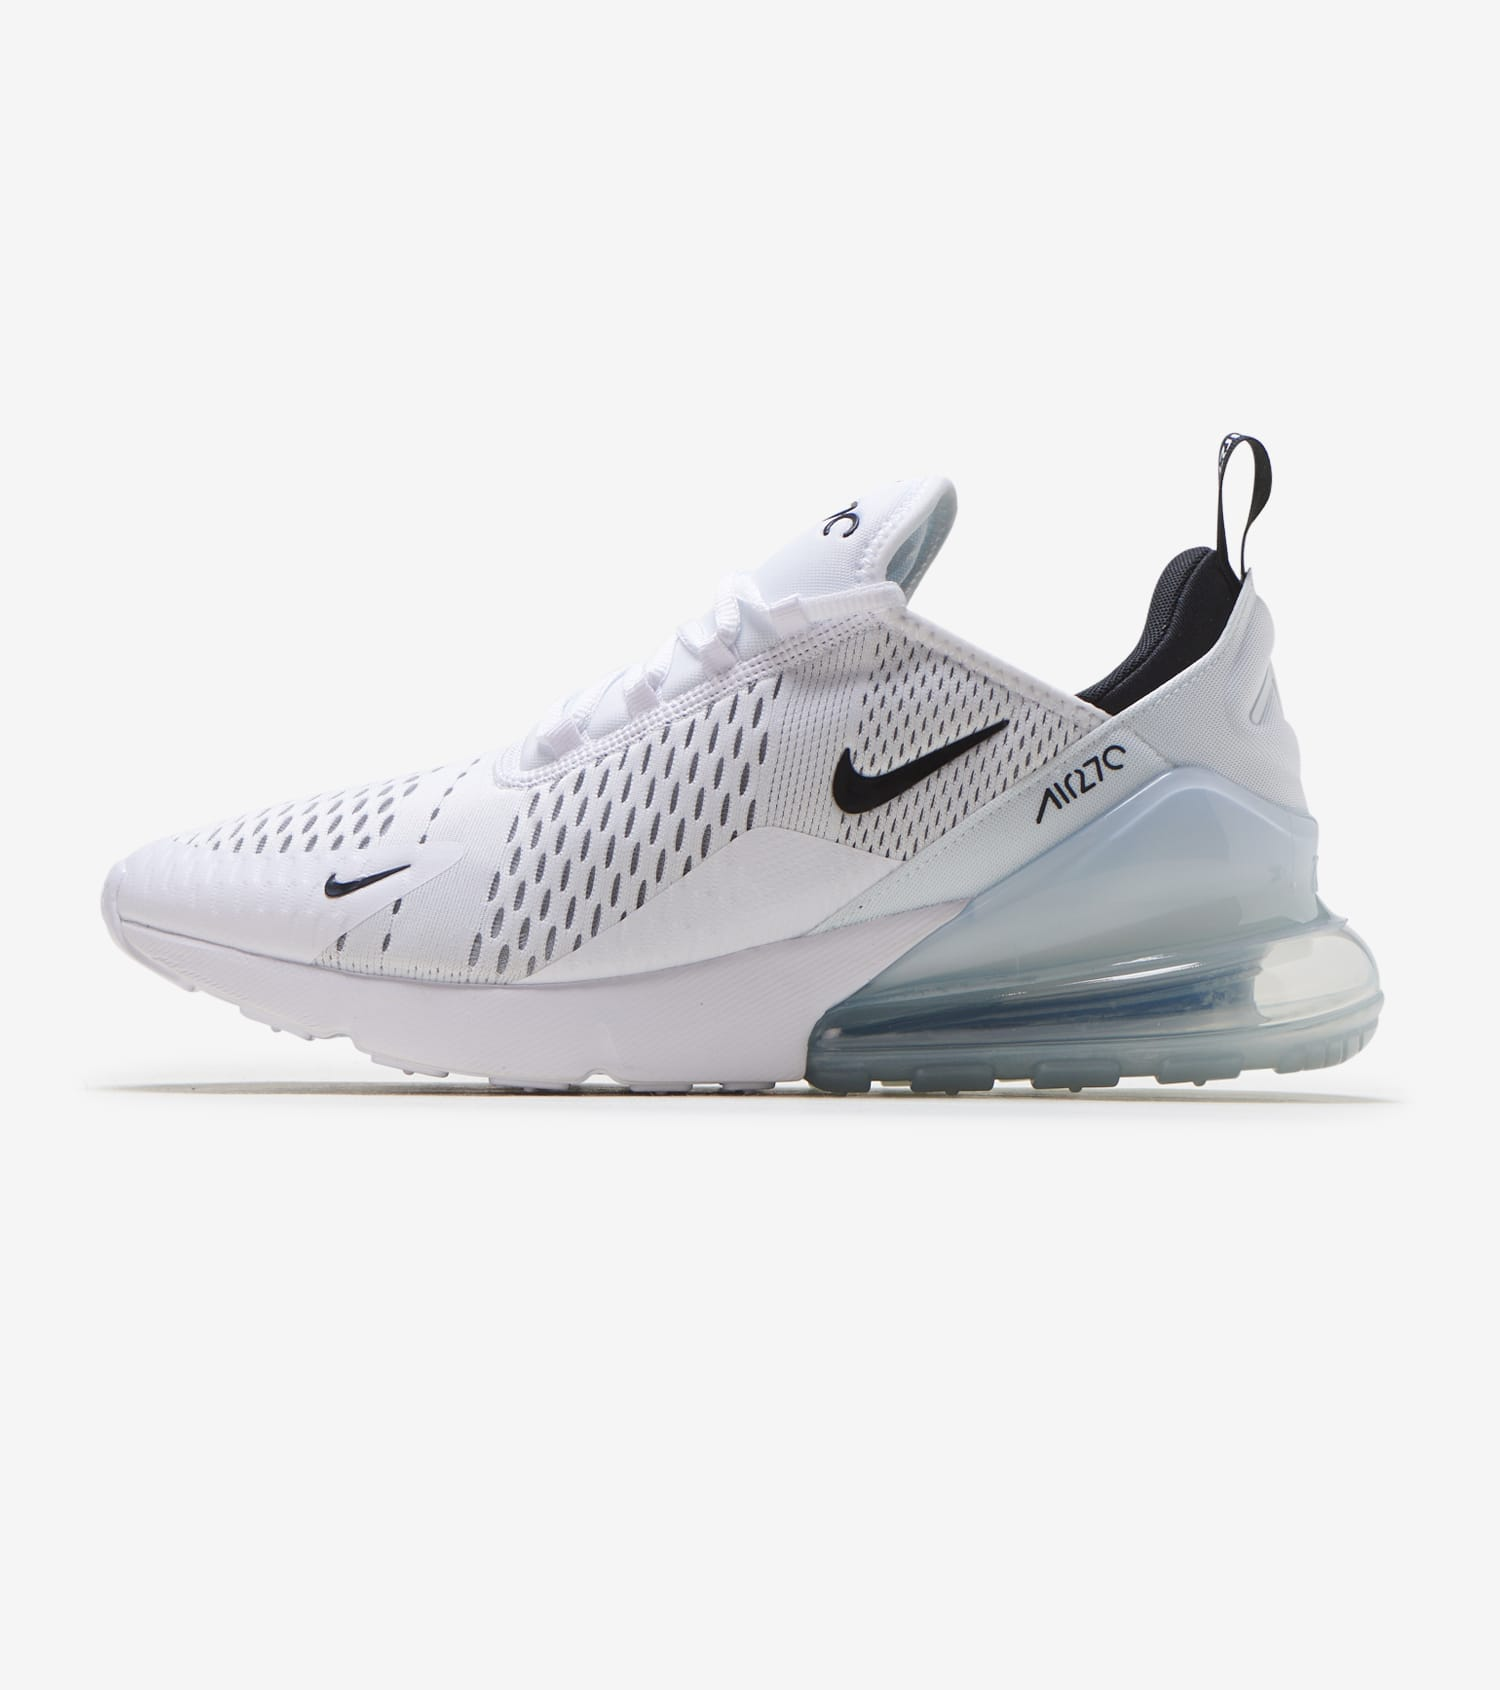 Men OFF WHITE X Nike Air Max 270 Running Shoe SKU:113748 267 Best